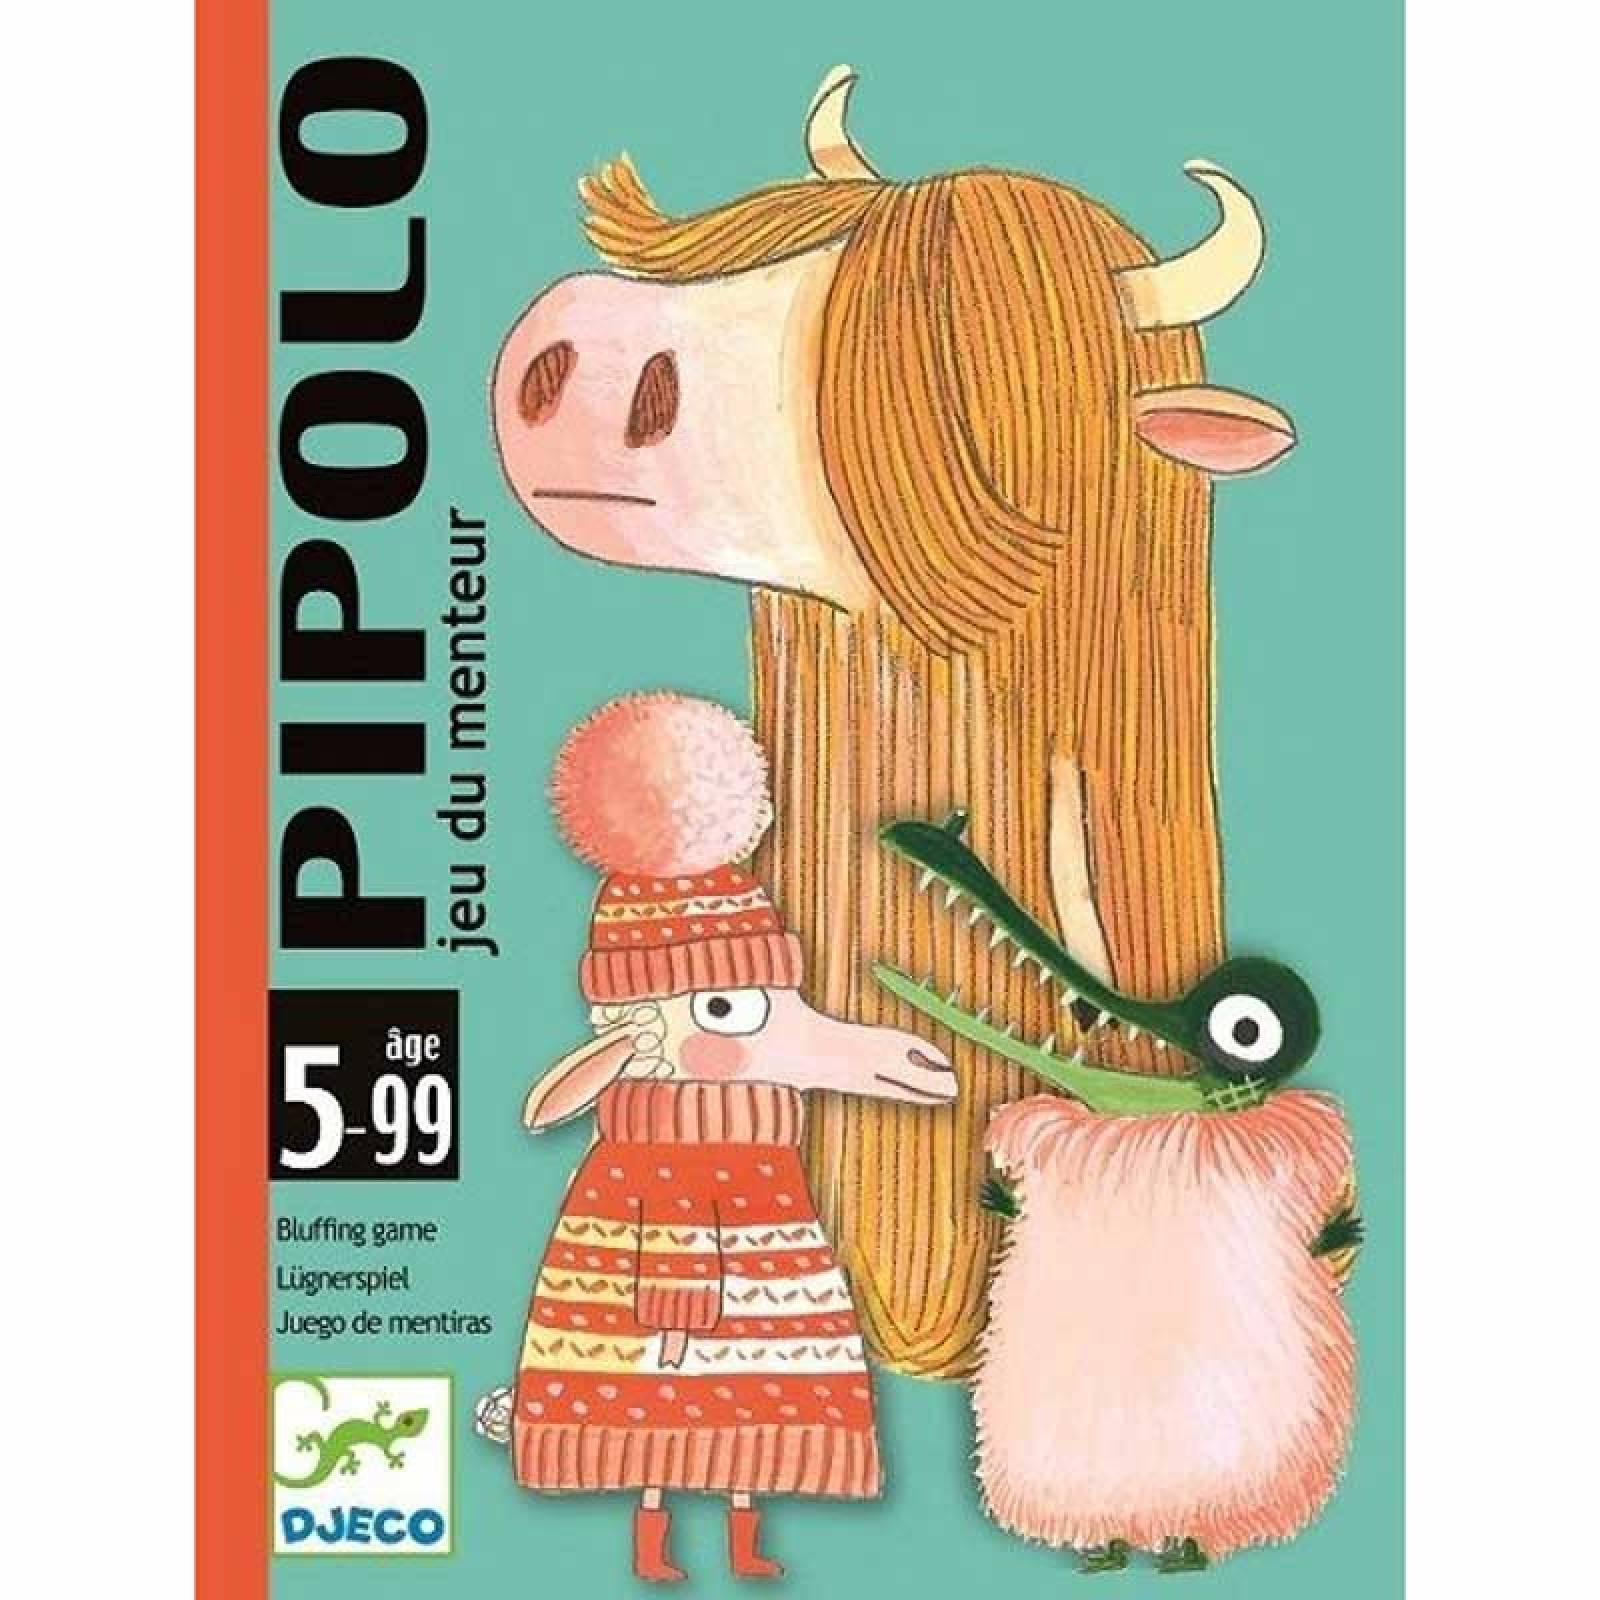 Pipolo Card Game -Bluffing Game, Hairy or Naked? 5-99yrs